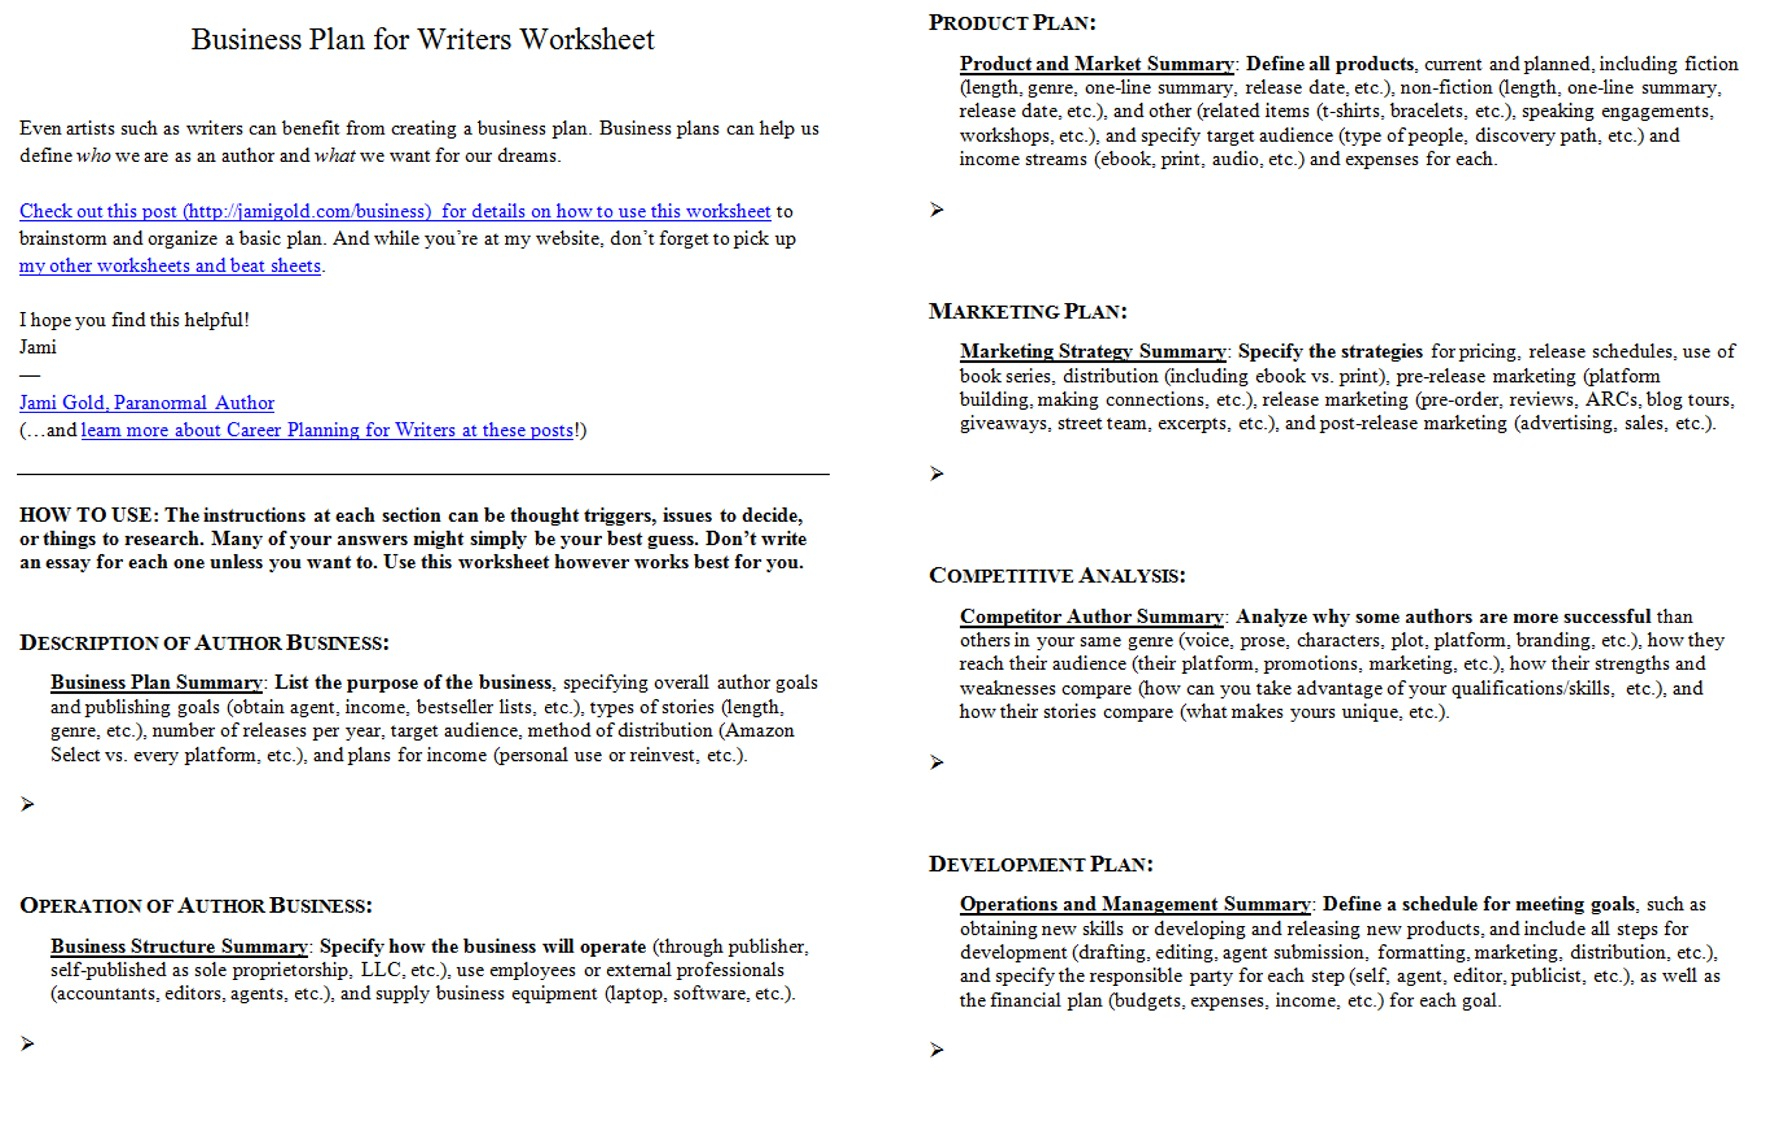 worksheet Plot Development Worksheet worksheets for writers jami gold paranormal author screen shot of both pages the business plan worksheet